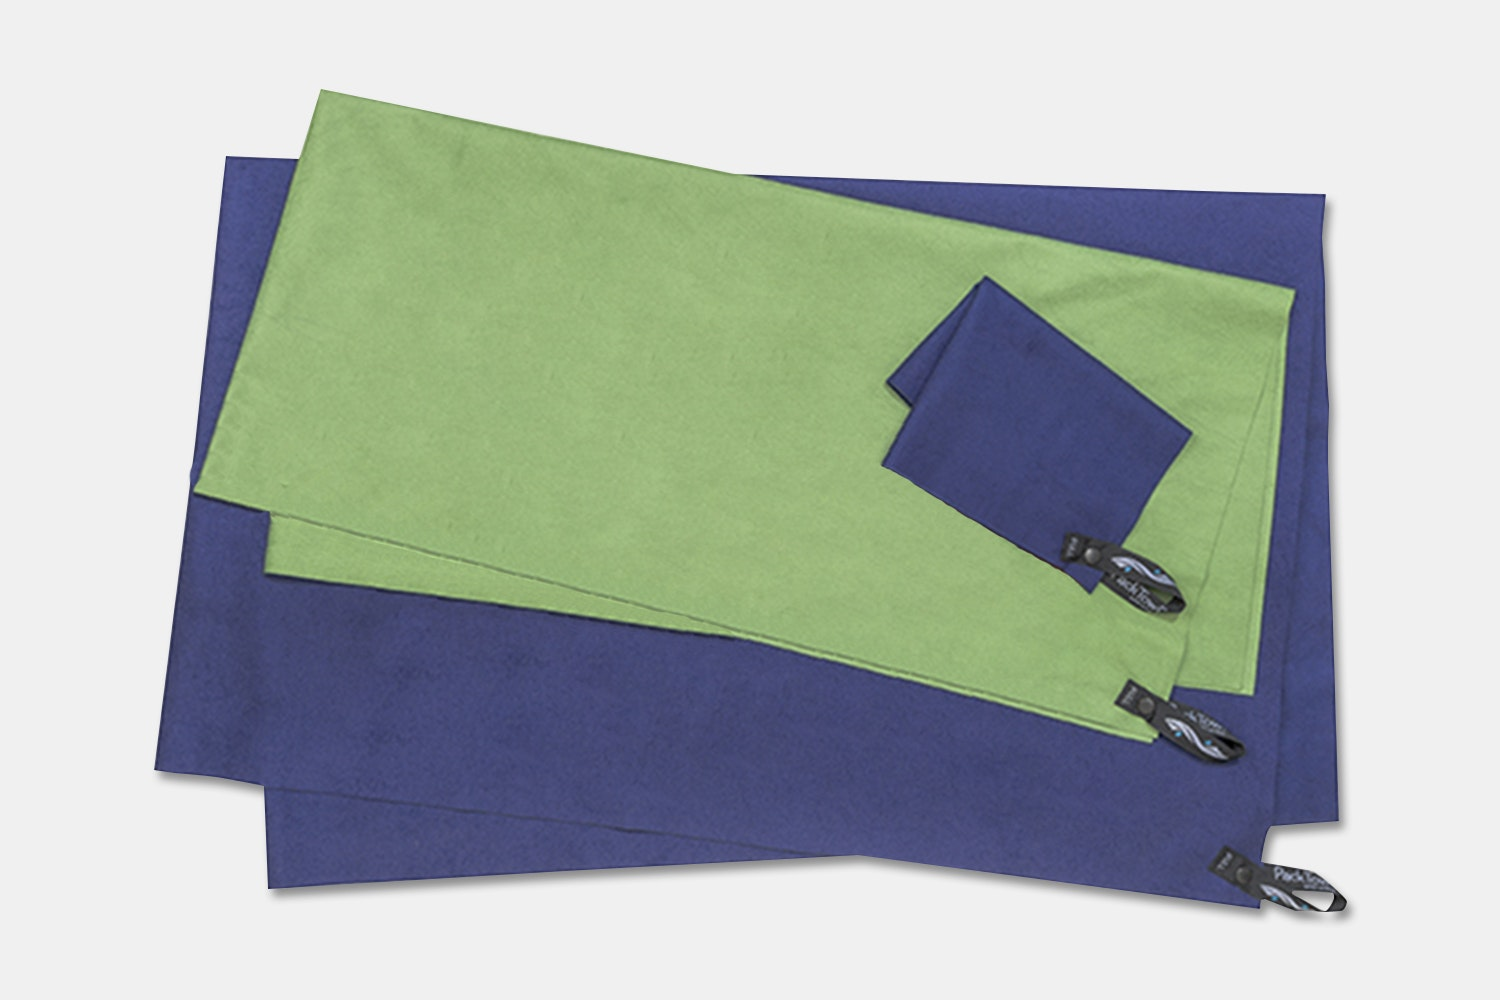 PackTowl Ultralite Body Towel Lichen Green Compact Quick Drying Pack Towel